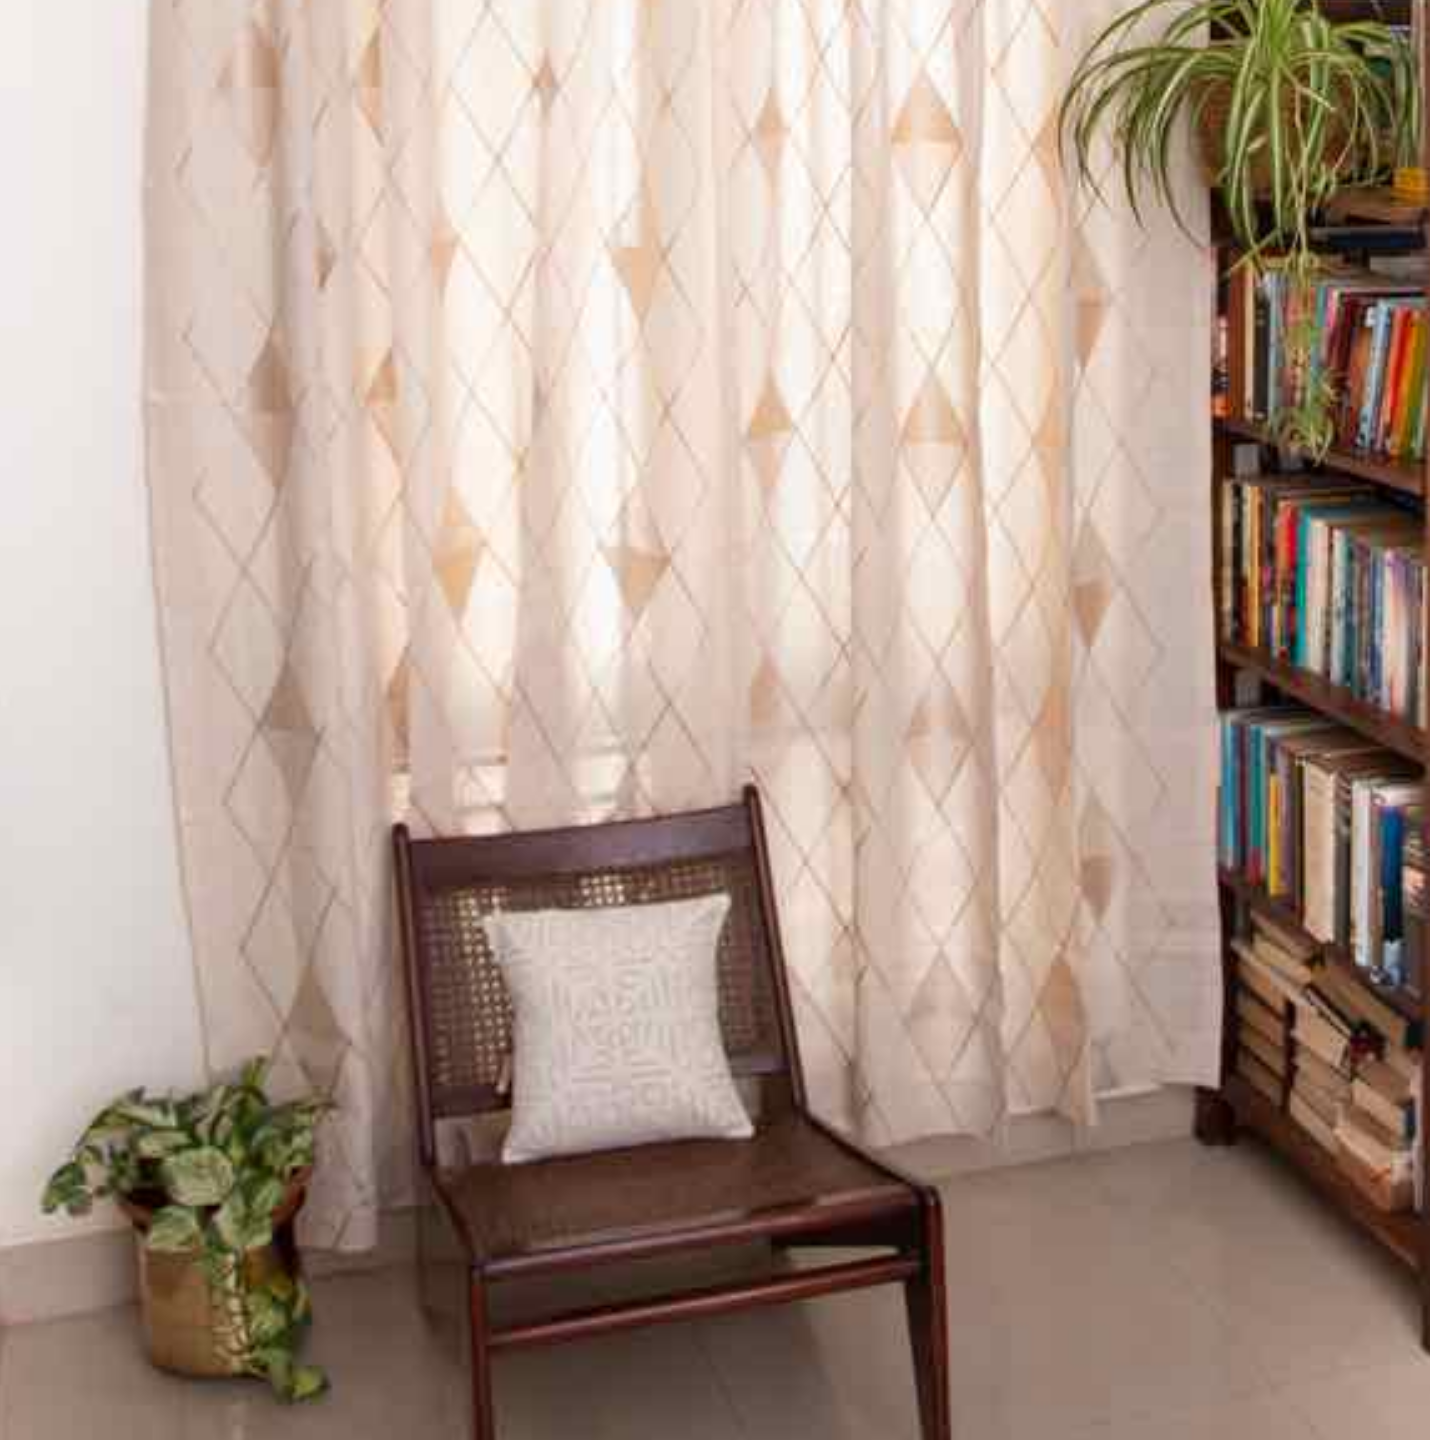 Curtain - Embroidered